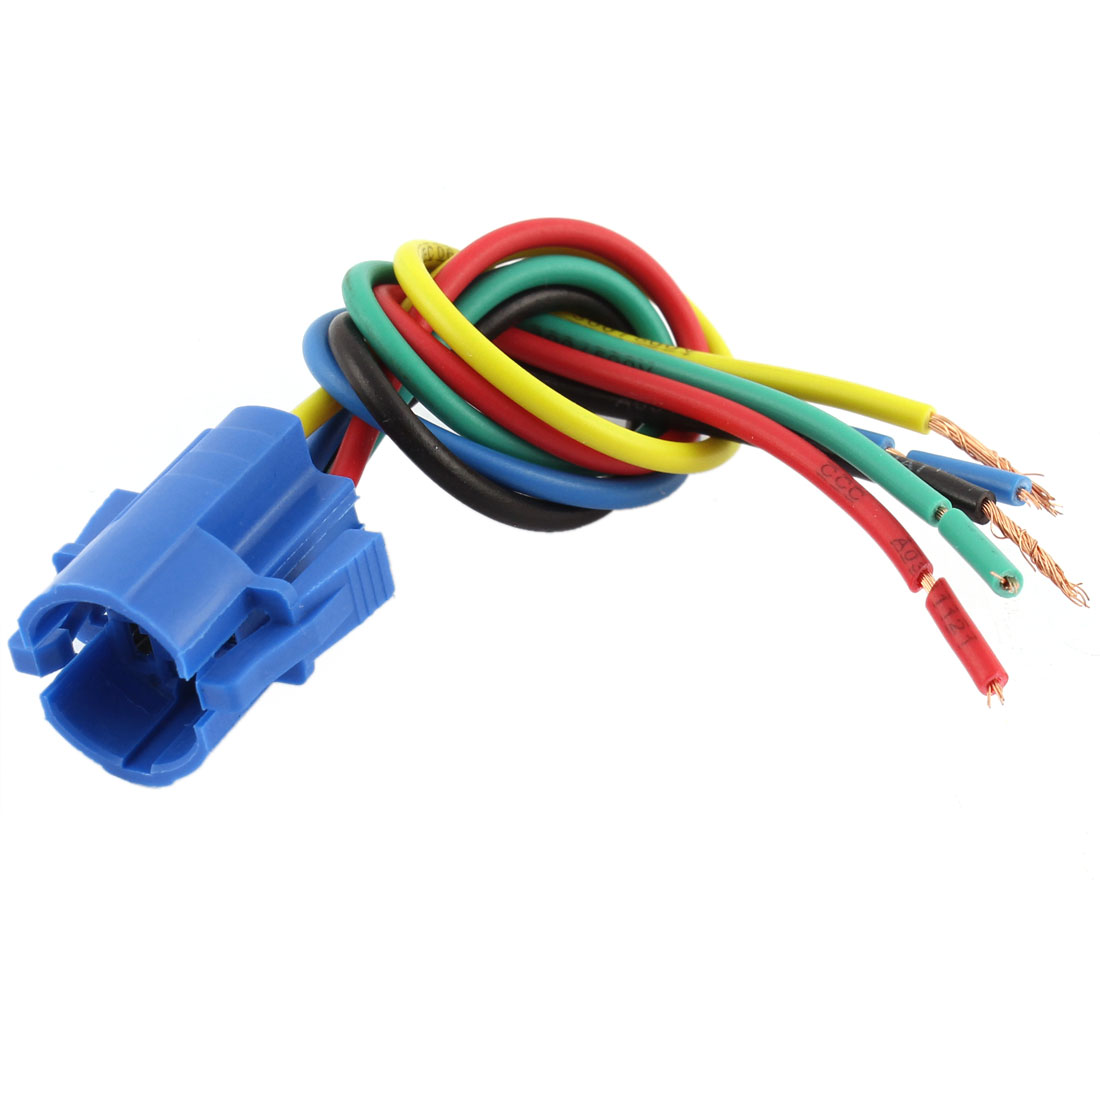 Car 16mm Socket Adapter 5 Pin Wire Harness for Metal Switch ON/OFF Button